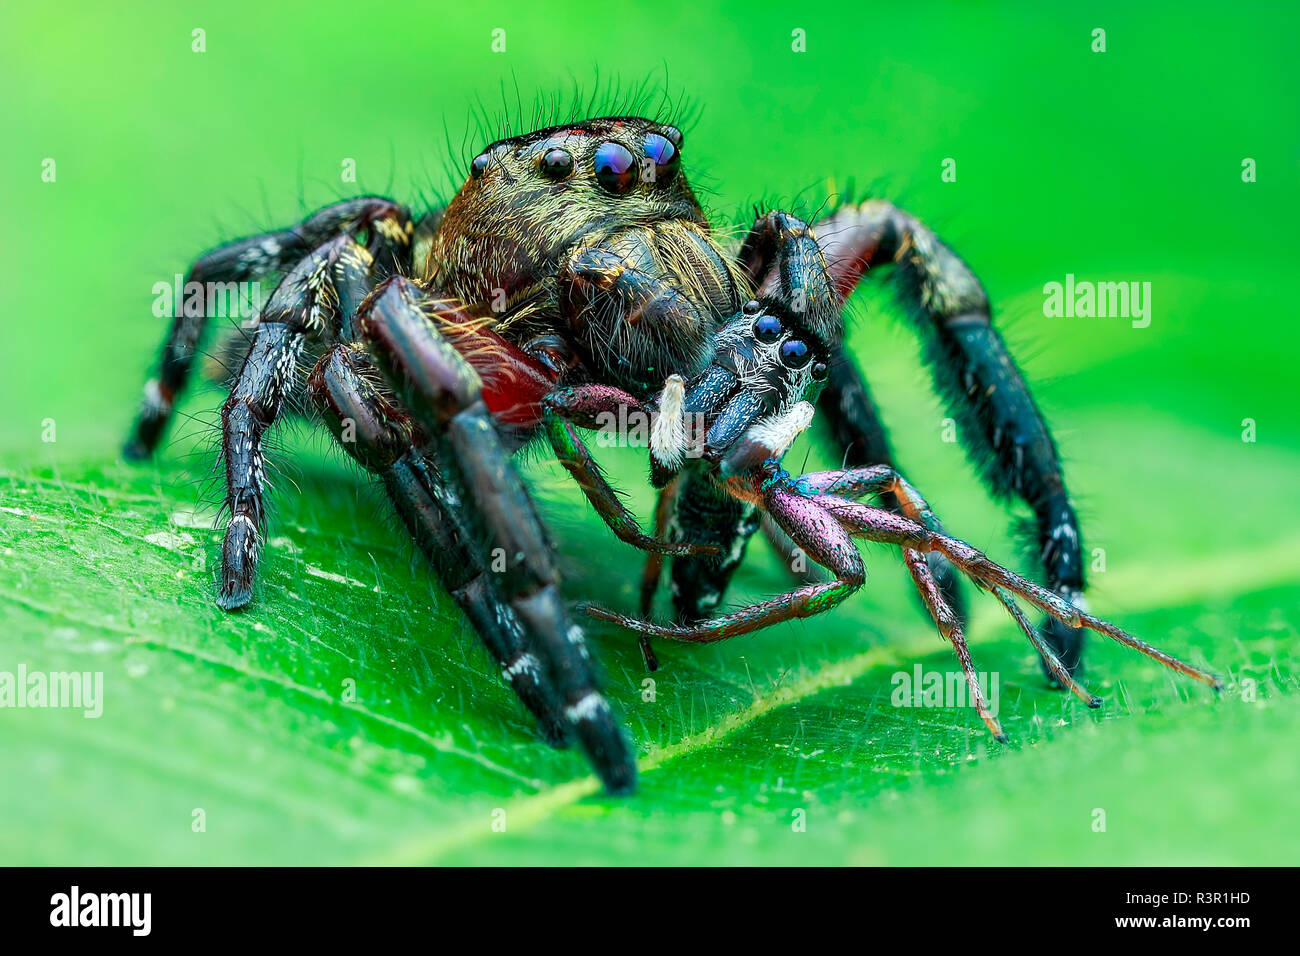 A male jumping spider (Hyllus diardi) with prey, another jumping spider(Cosmophasis umbratica). - Stock Image